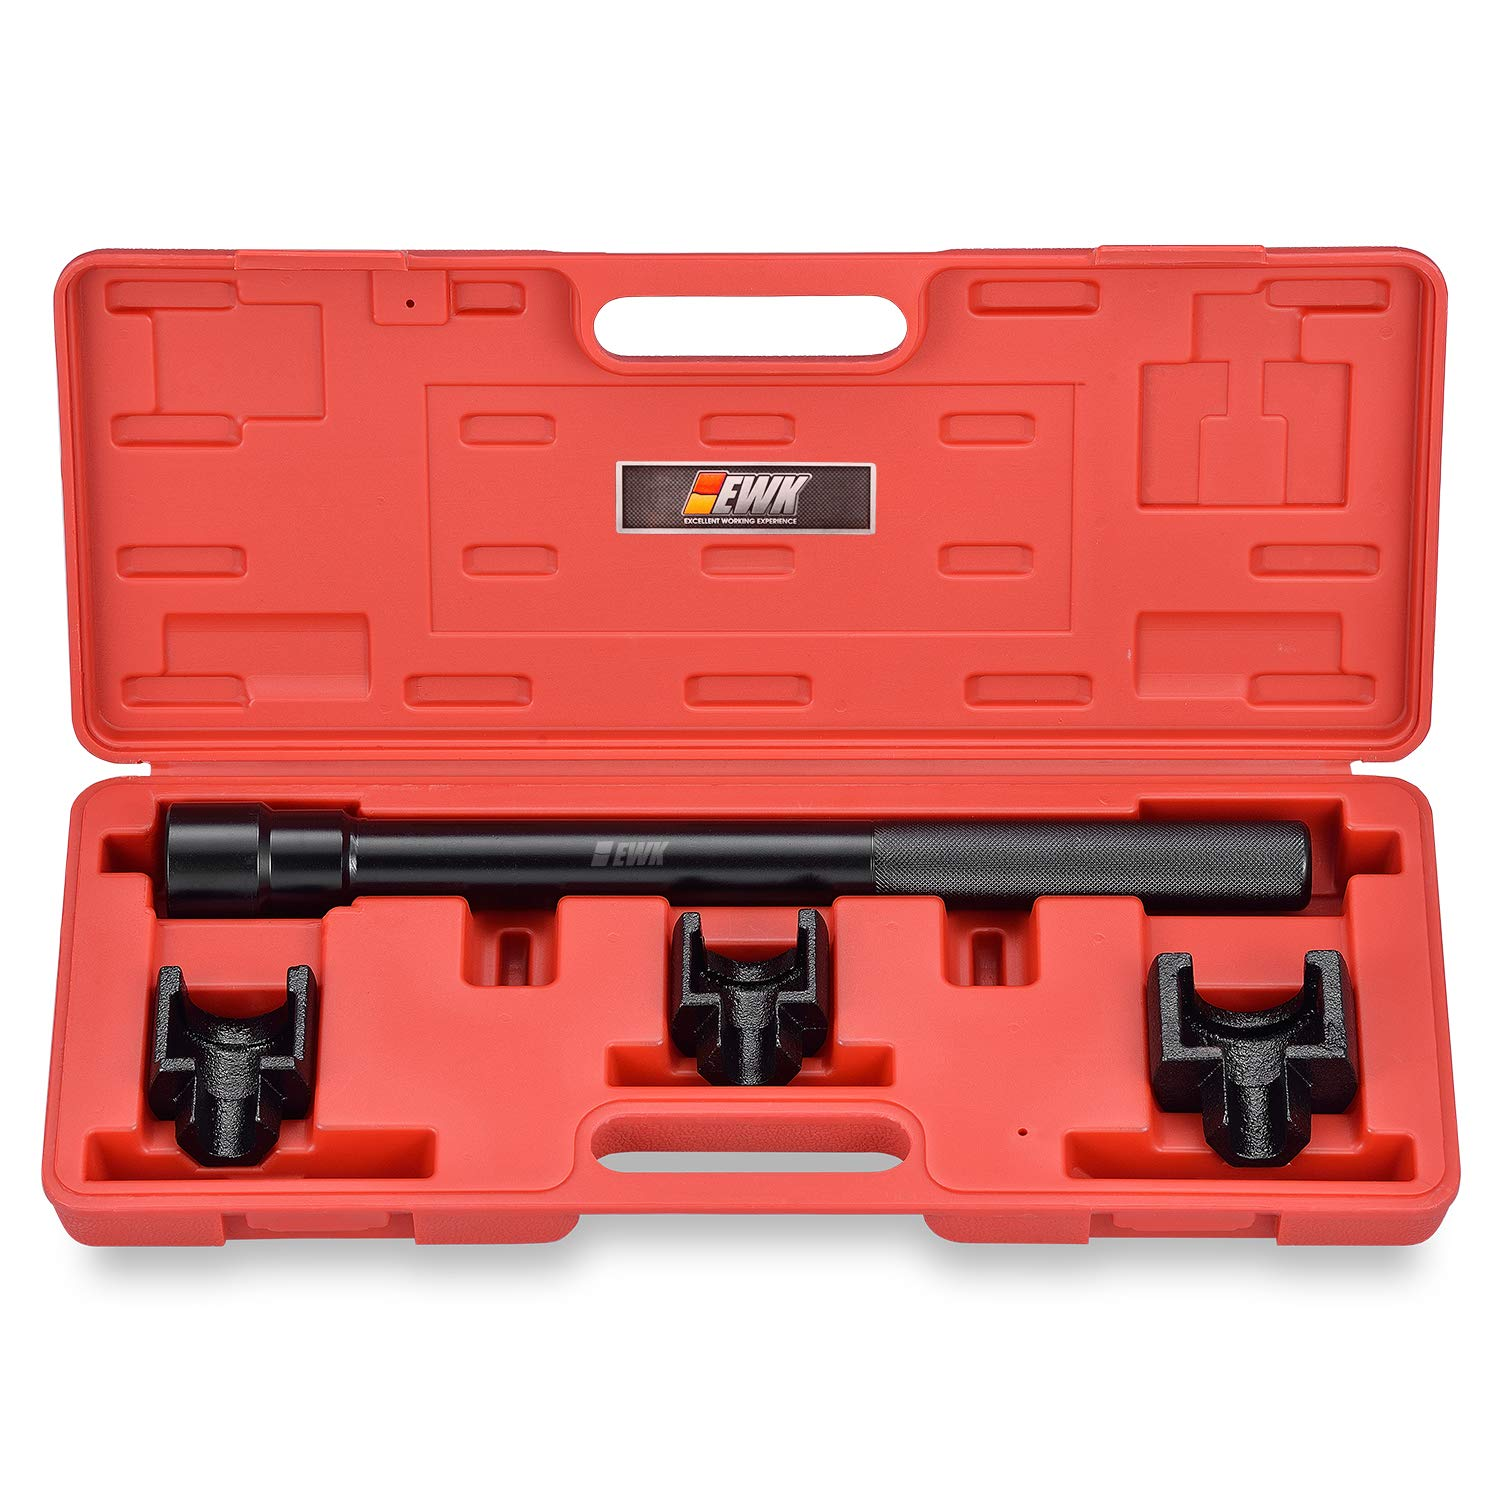 EWK Dual Inner Tie Rod Removal Tool Set with 3 Adapters 1-3/16 1-5/16 1-7/16 Inch for GM Ford Chrysler by EWK